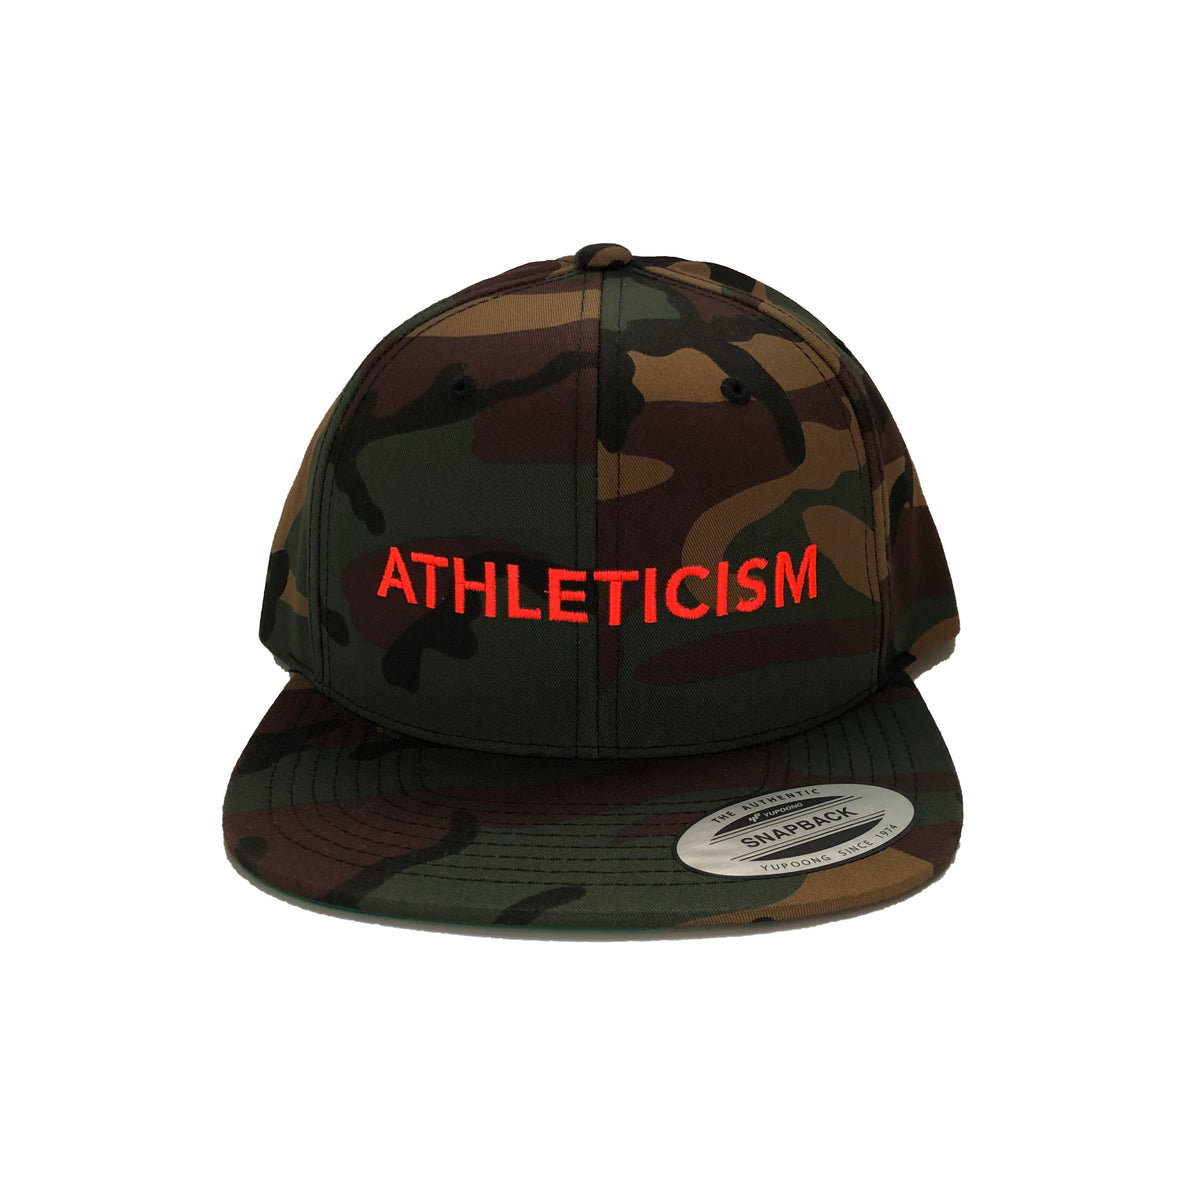 This is a vintage, soft mesh offers comfort, looks, and performance all in one. It is lightweight, breathable with a mid-structure profile. Basically, it is the most comfortable cap! The plastic snap closure is adjustable for most sizes. Logo up and show everyone that you are ATHLETICISM Made.